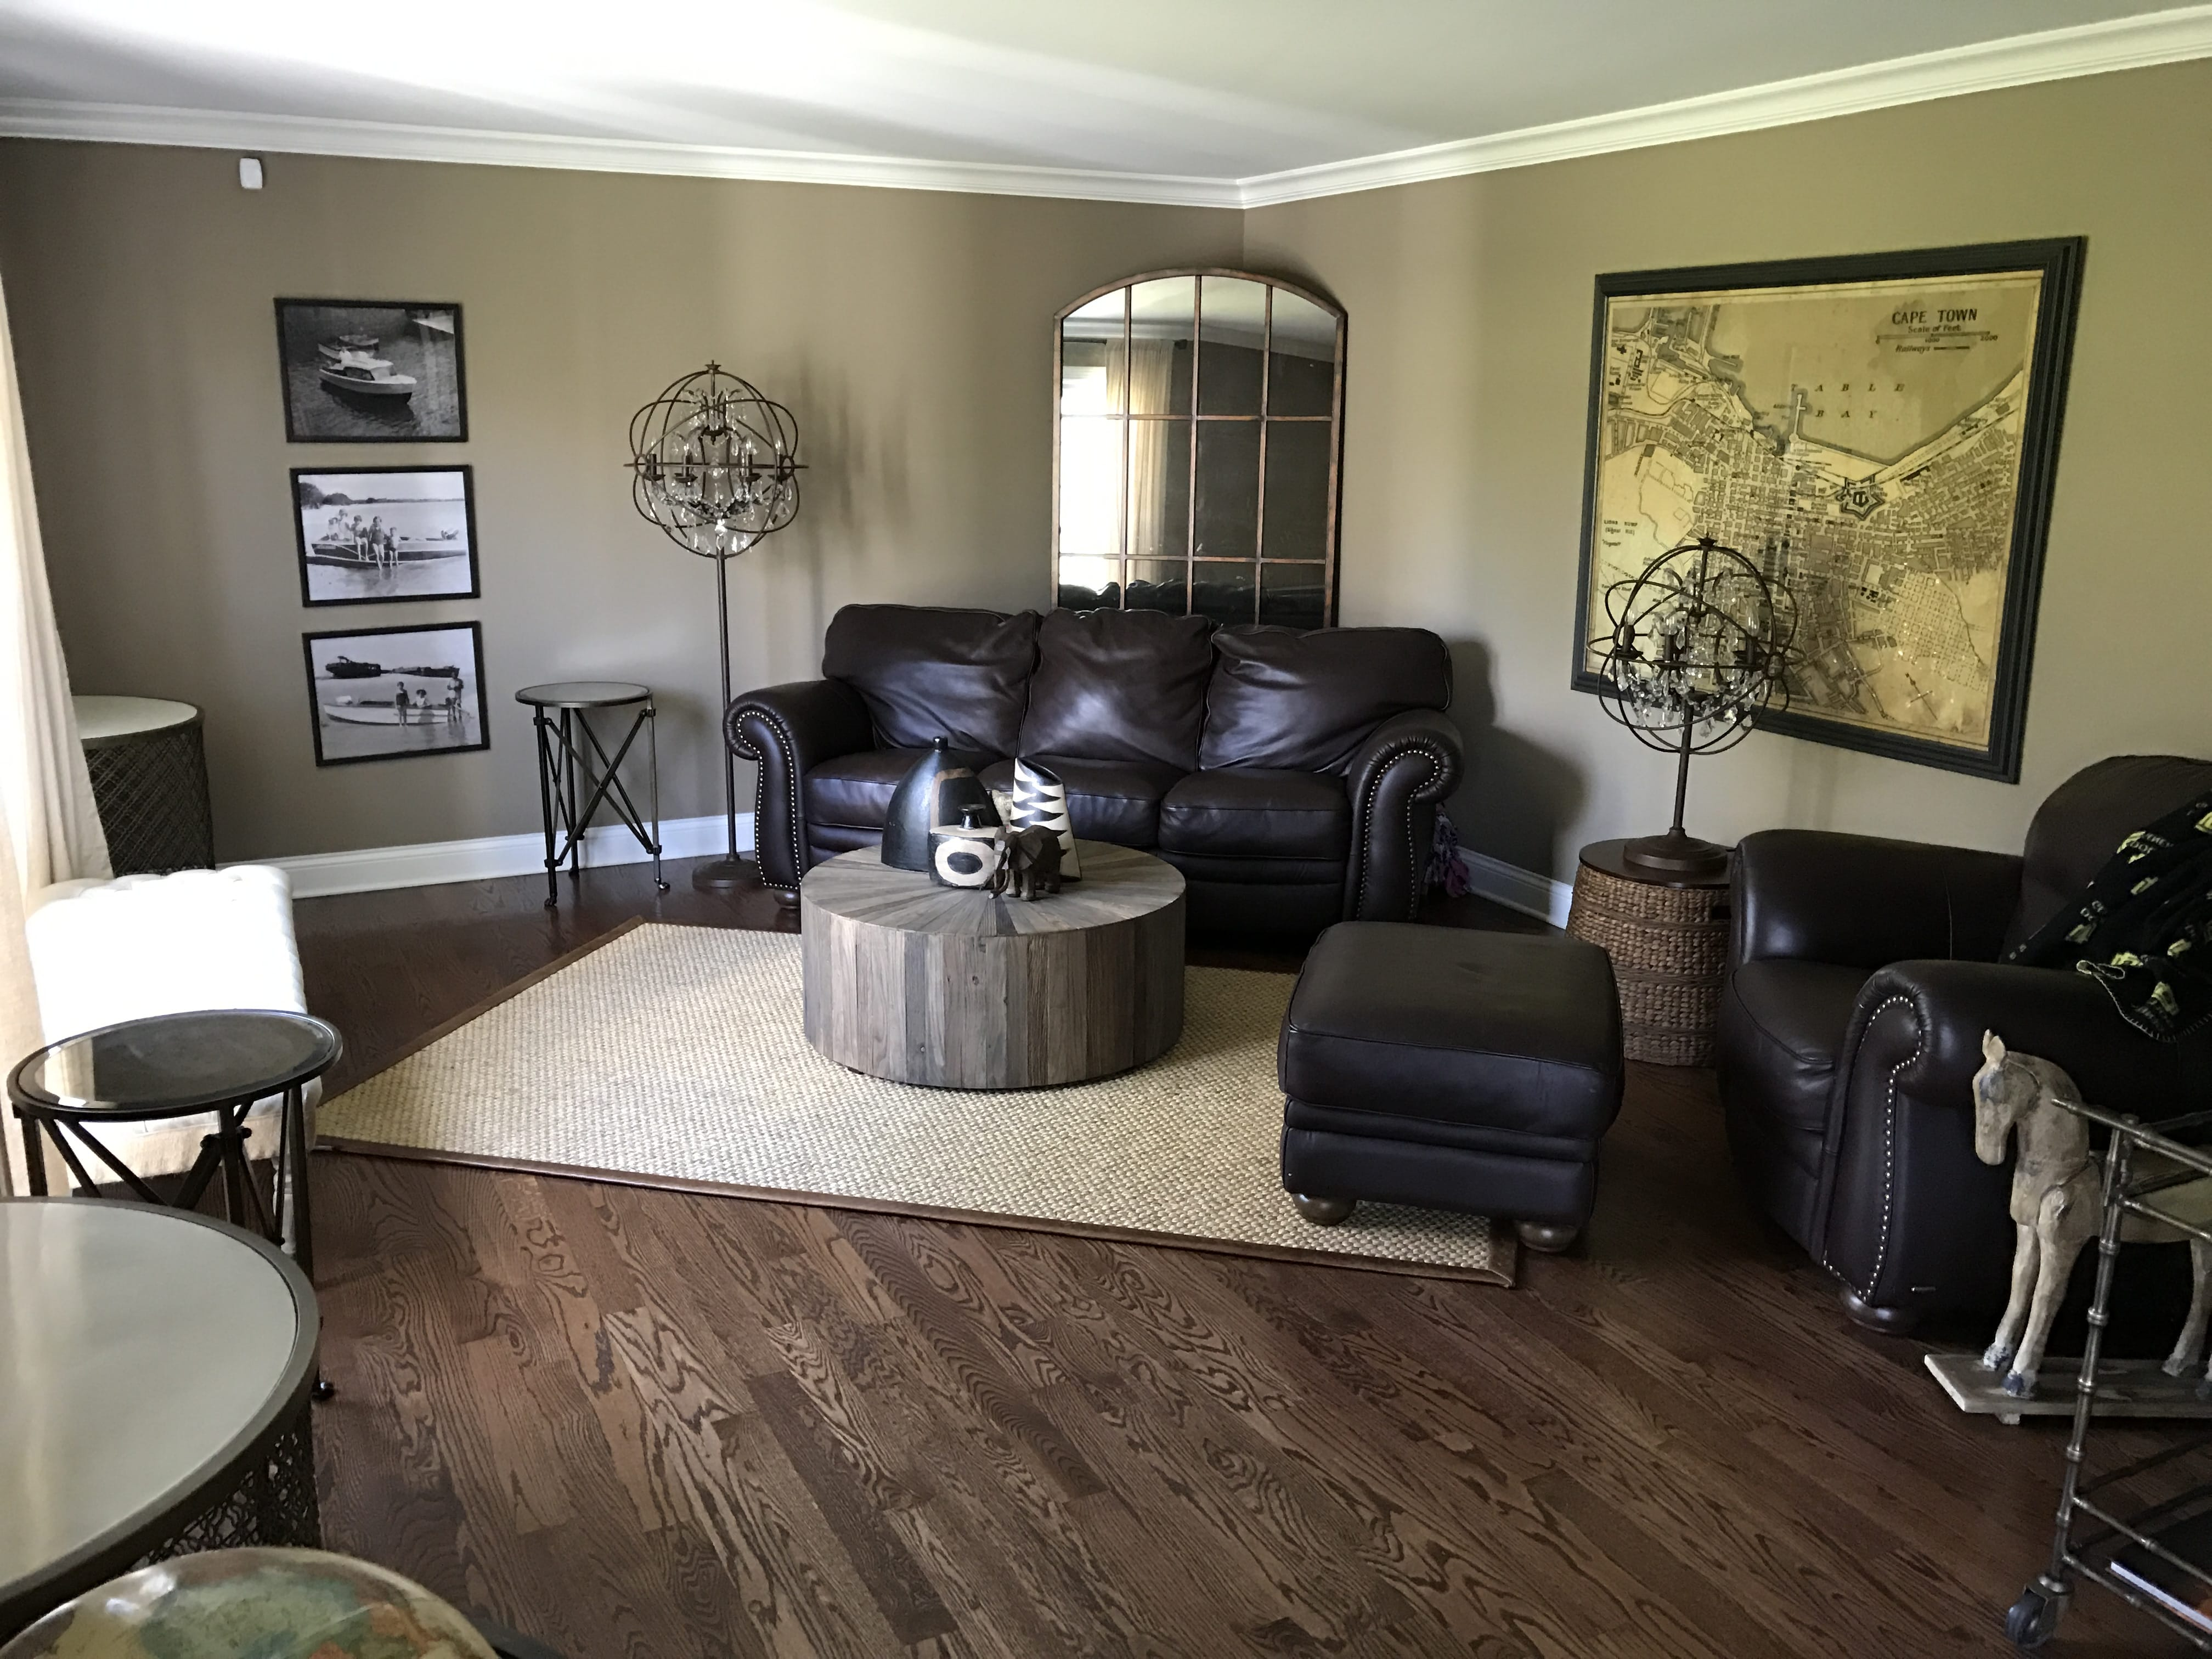 Living room remodel.